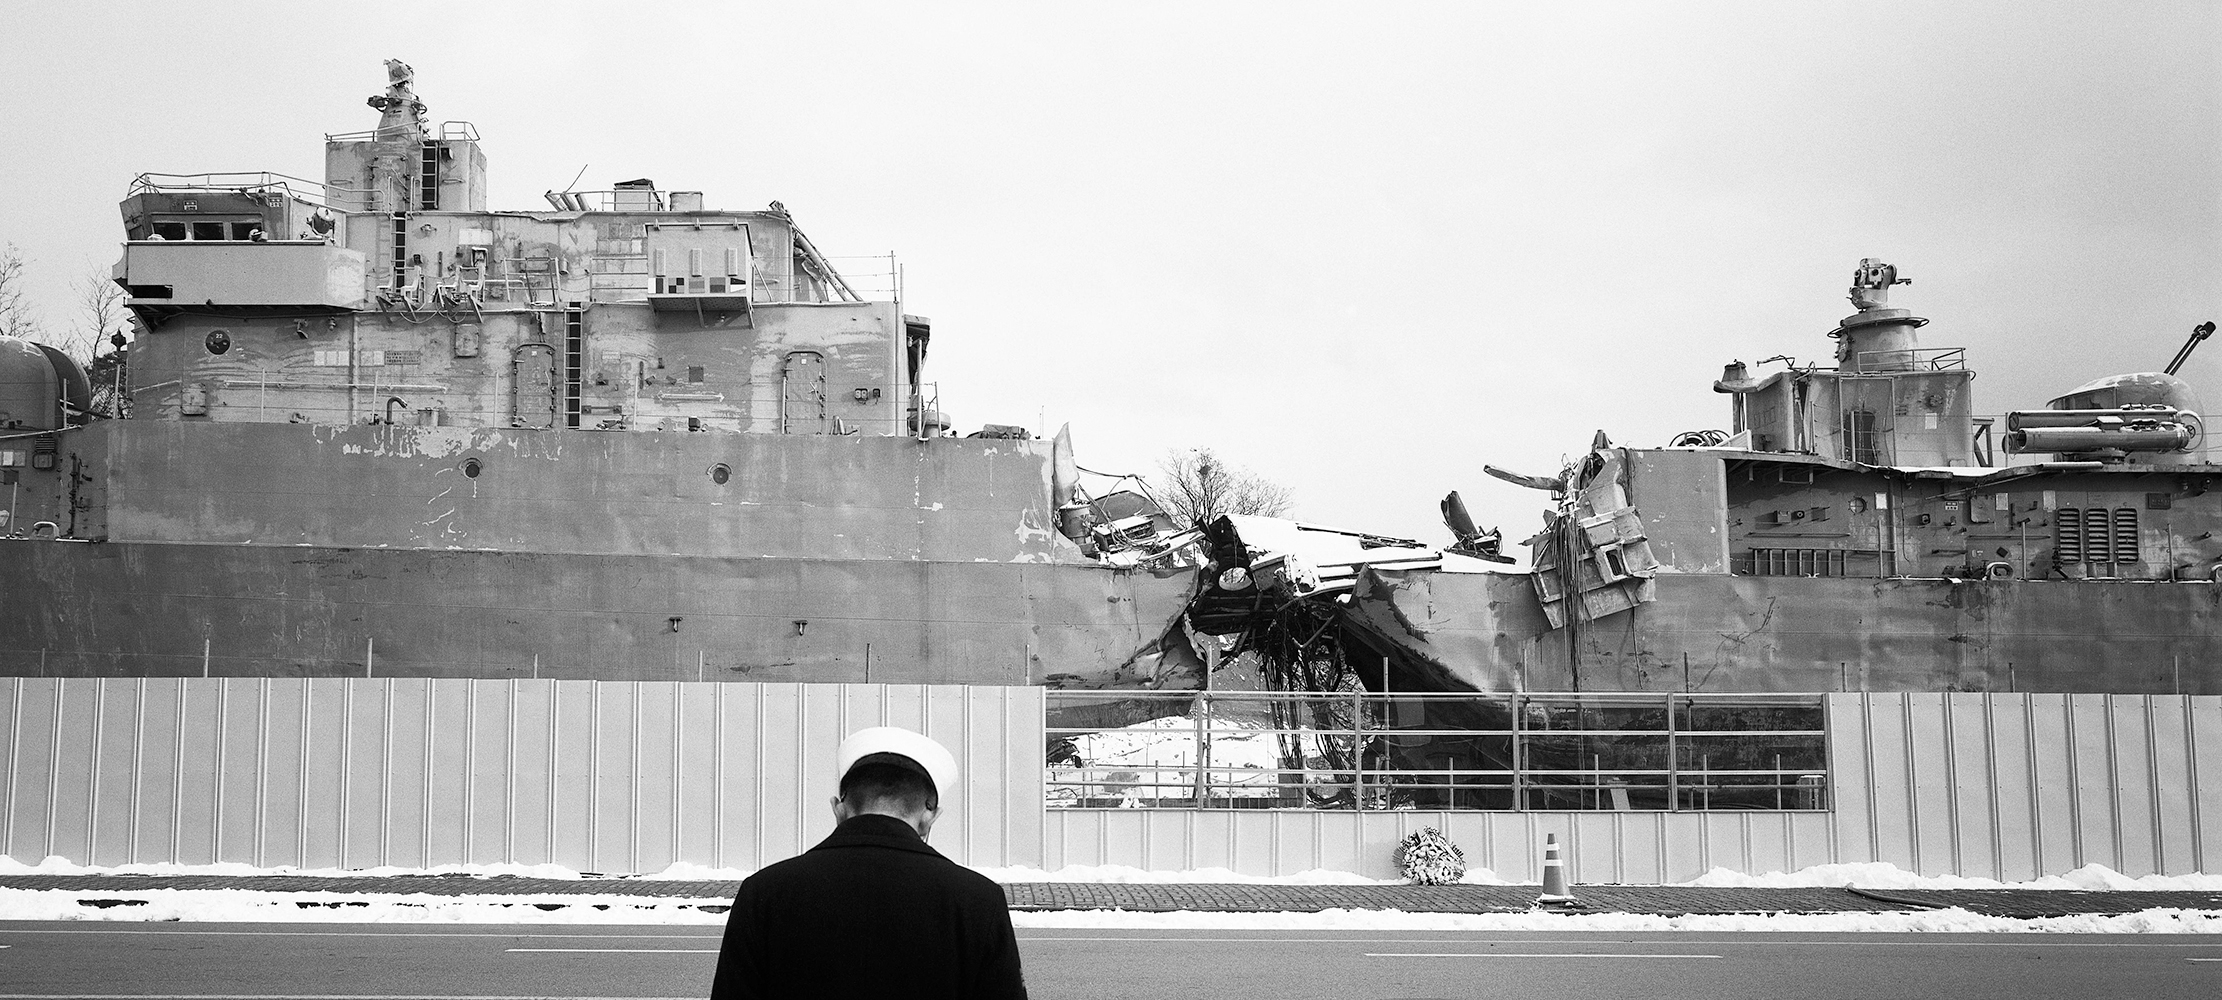 Jinhyun Cha,  Soldier lowering head in front of the torpedoed warship,  2013